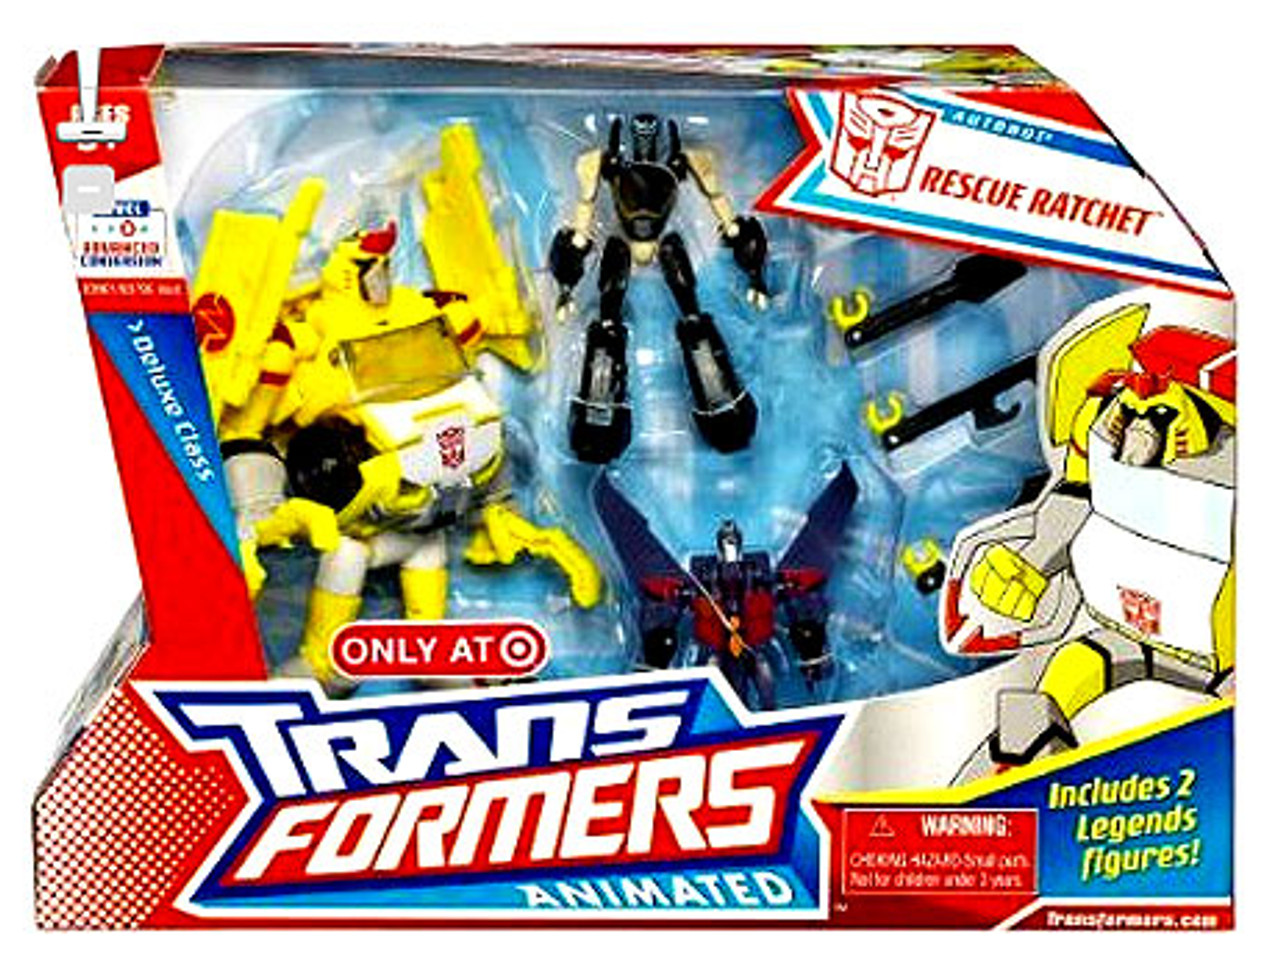 Transformers Animated Deluxe Rescue Ratchet Exclusive Deluxe Action Figure